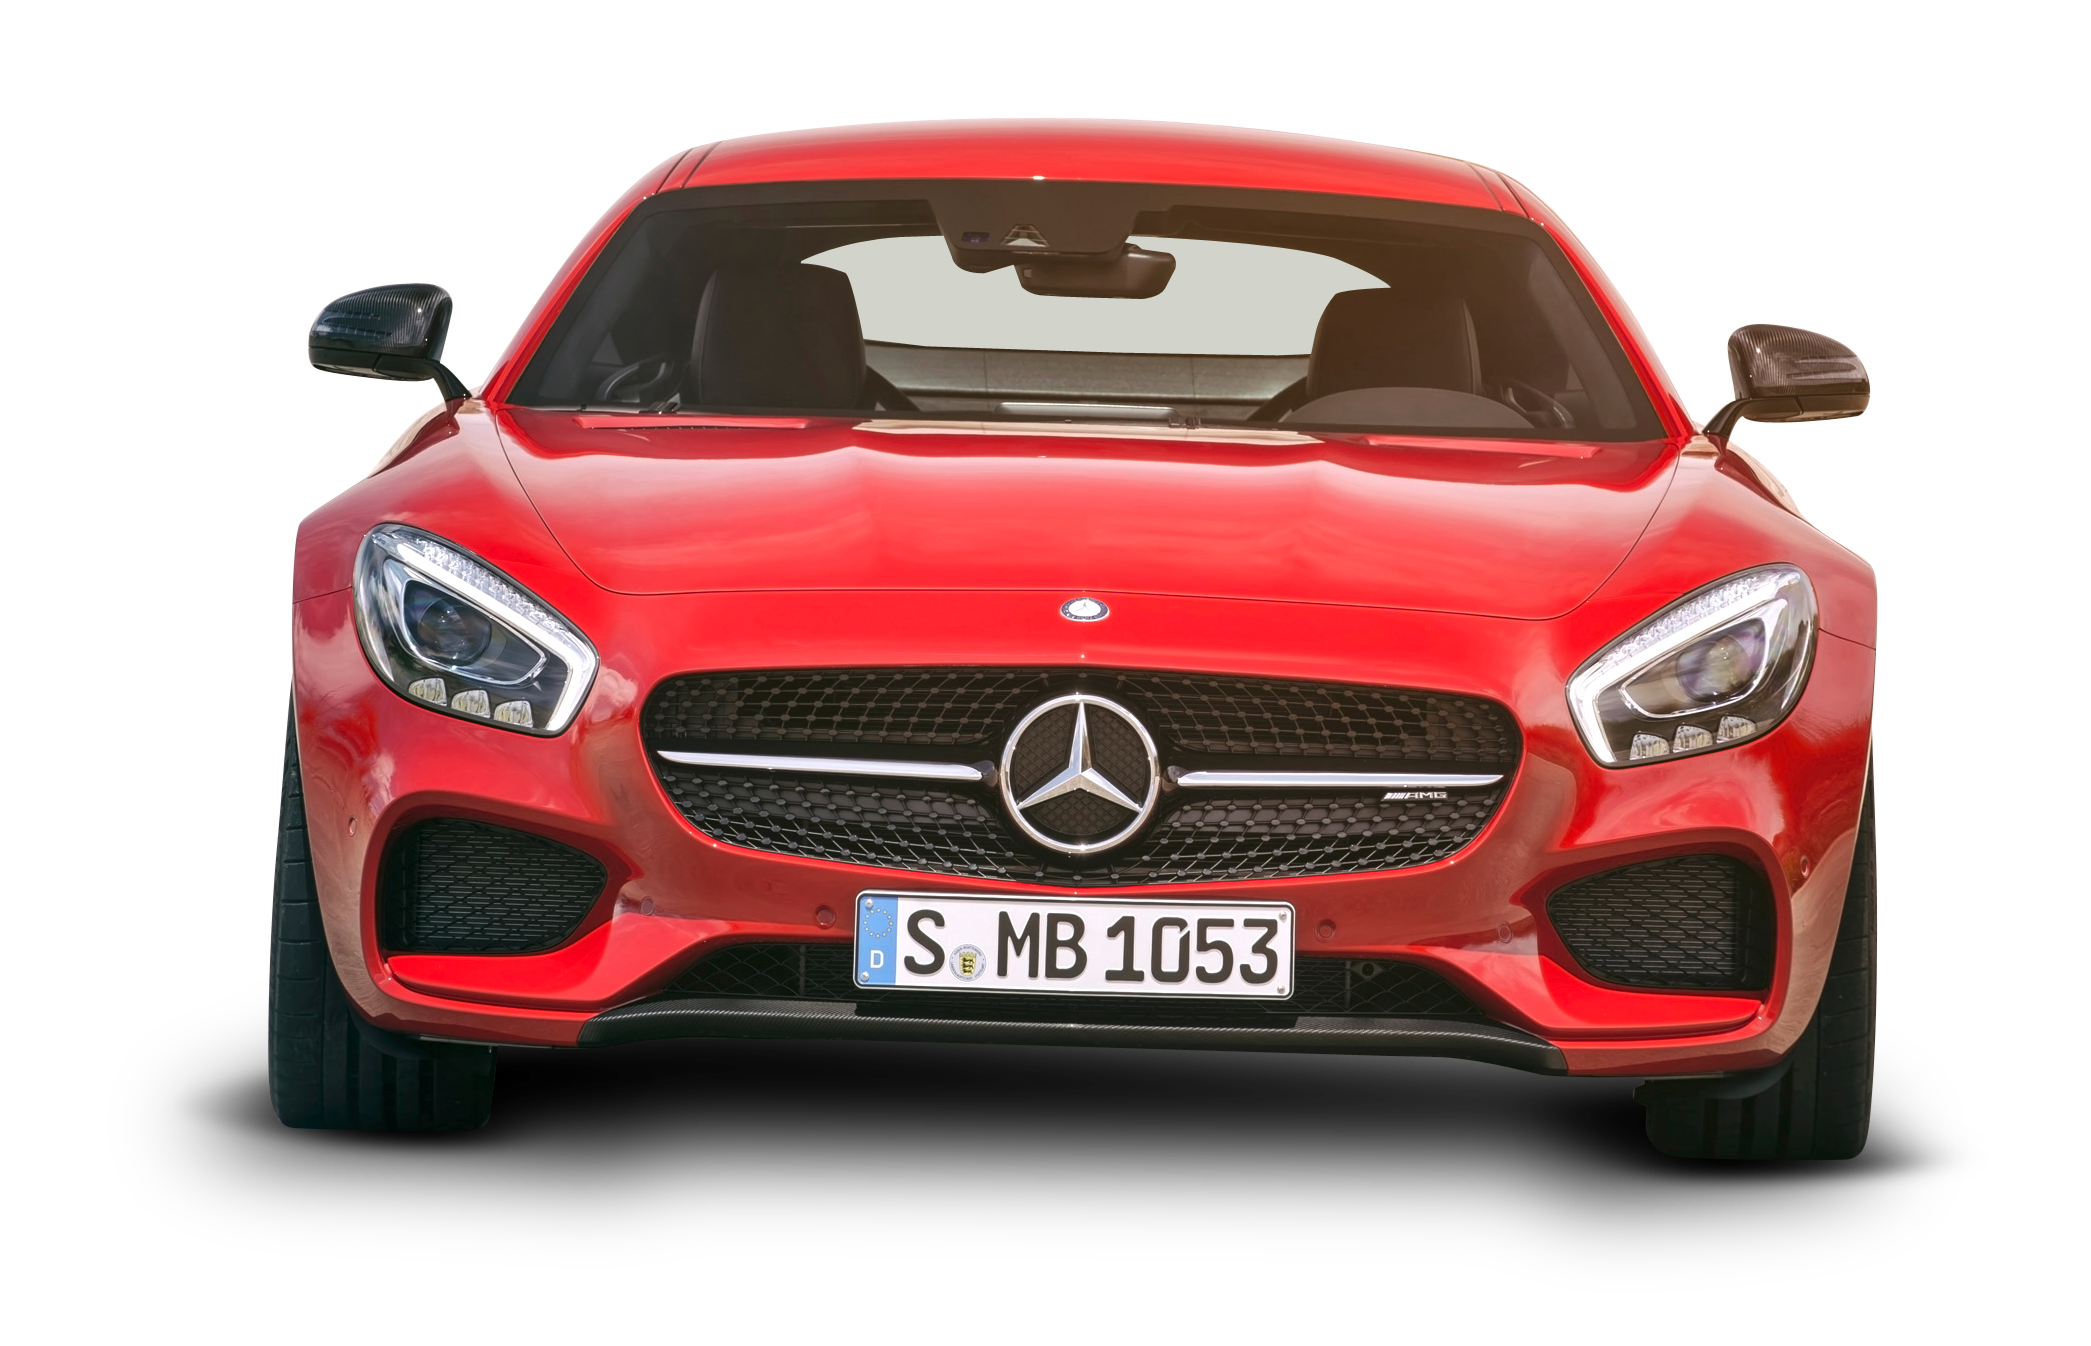 Mercedes Car Front Png image #32712 - Car PNG